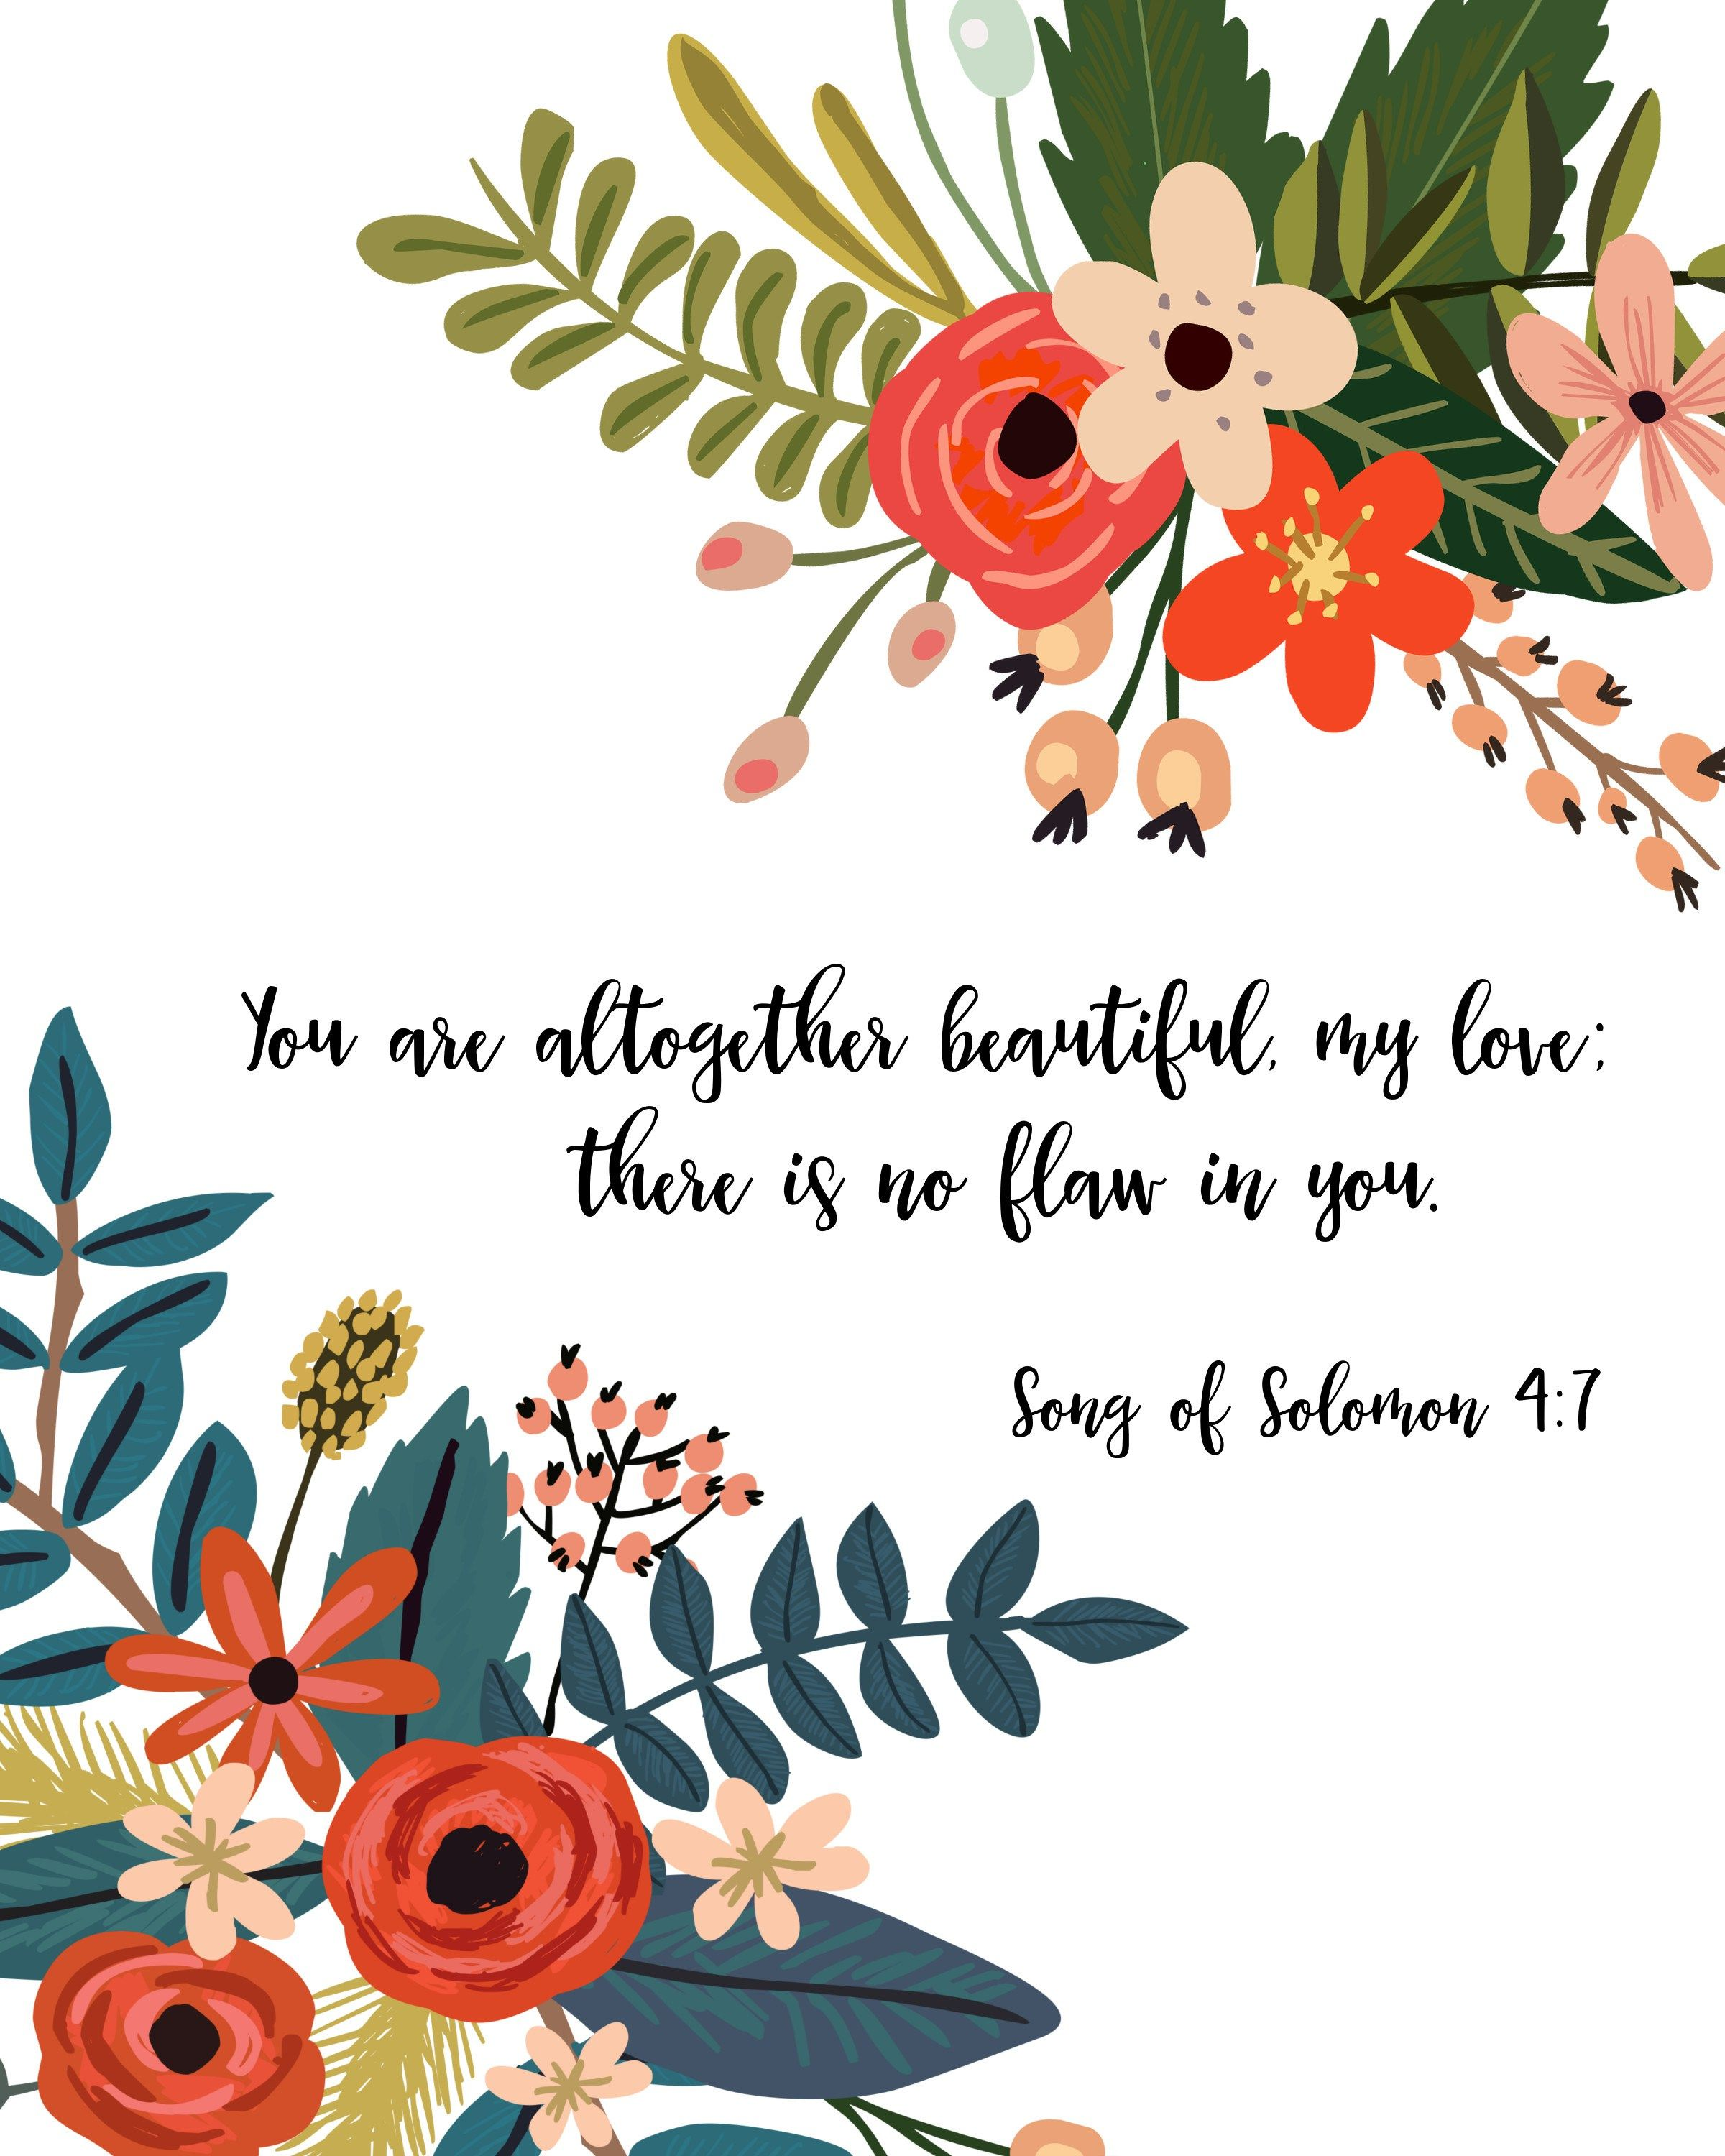 Free clipart love binds everything in perfect harmony bible verses clipart transparent Song of Solomon 4:7 - FREE print download! You are altogether ... clipart transparent